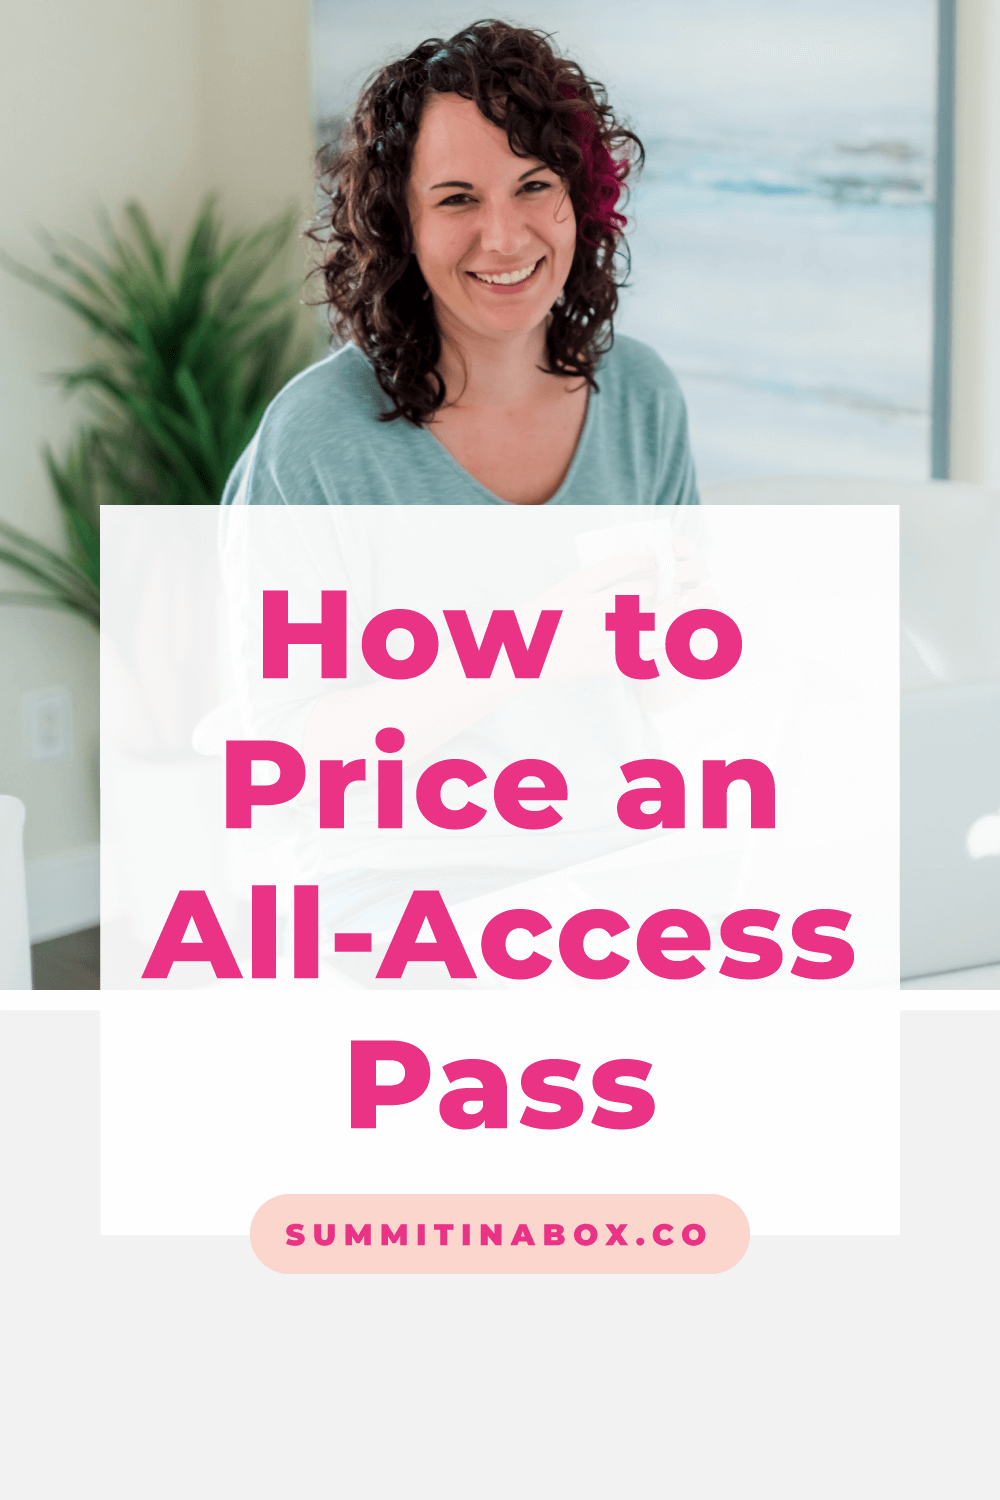 What should you charge for your summit's all-access pass? Learn how to price an all-access pass, based on your offer, and get the highest-converting price range here!